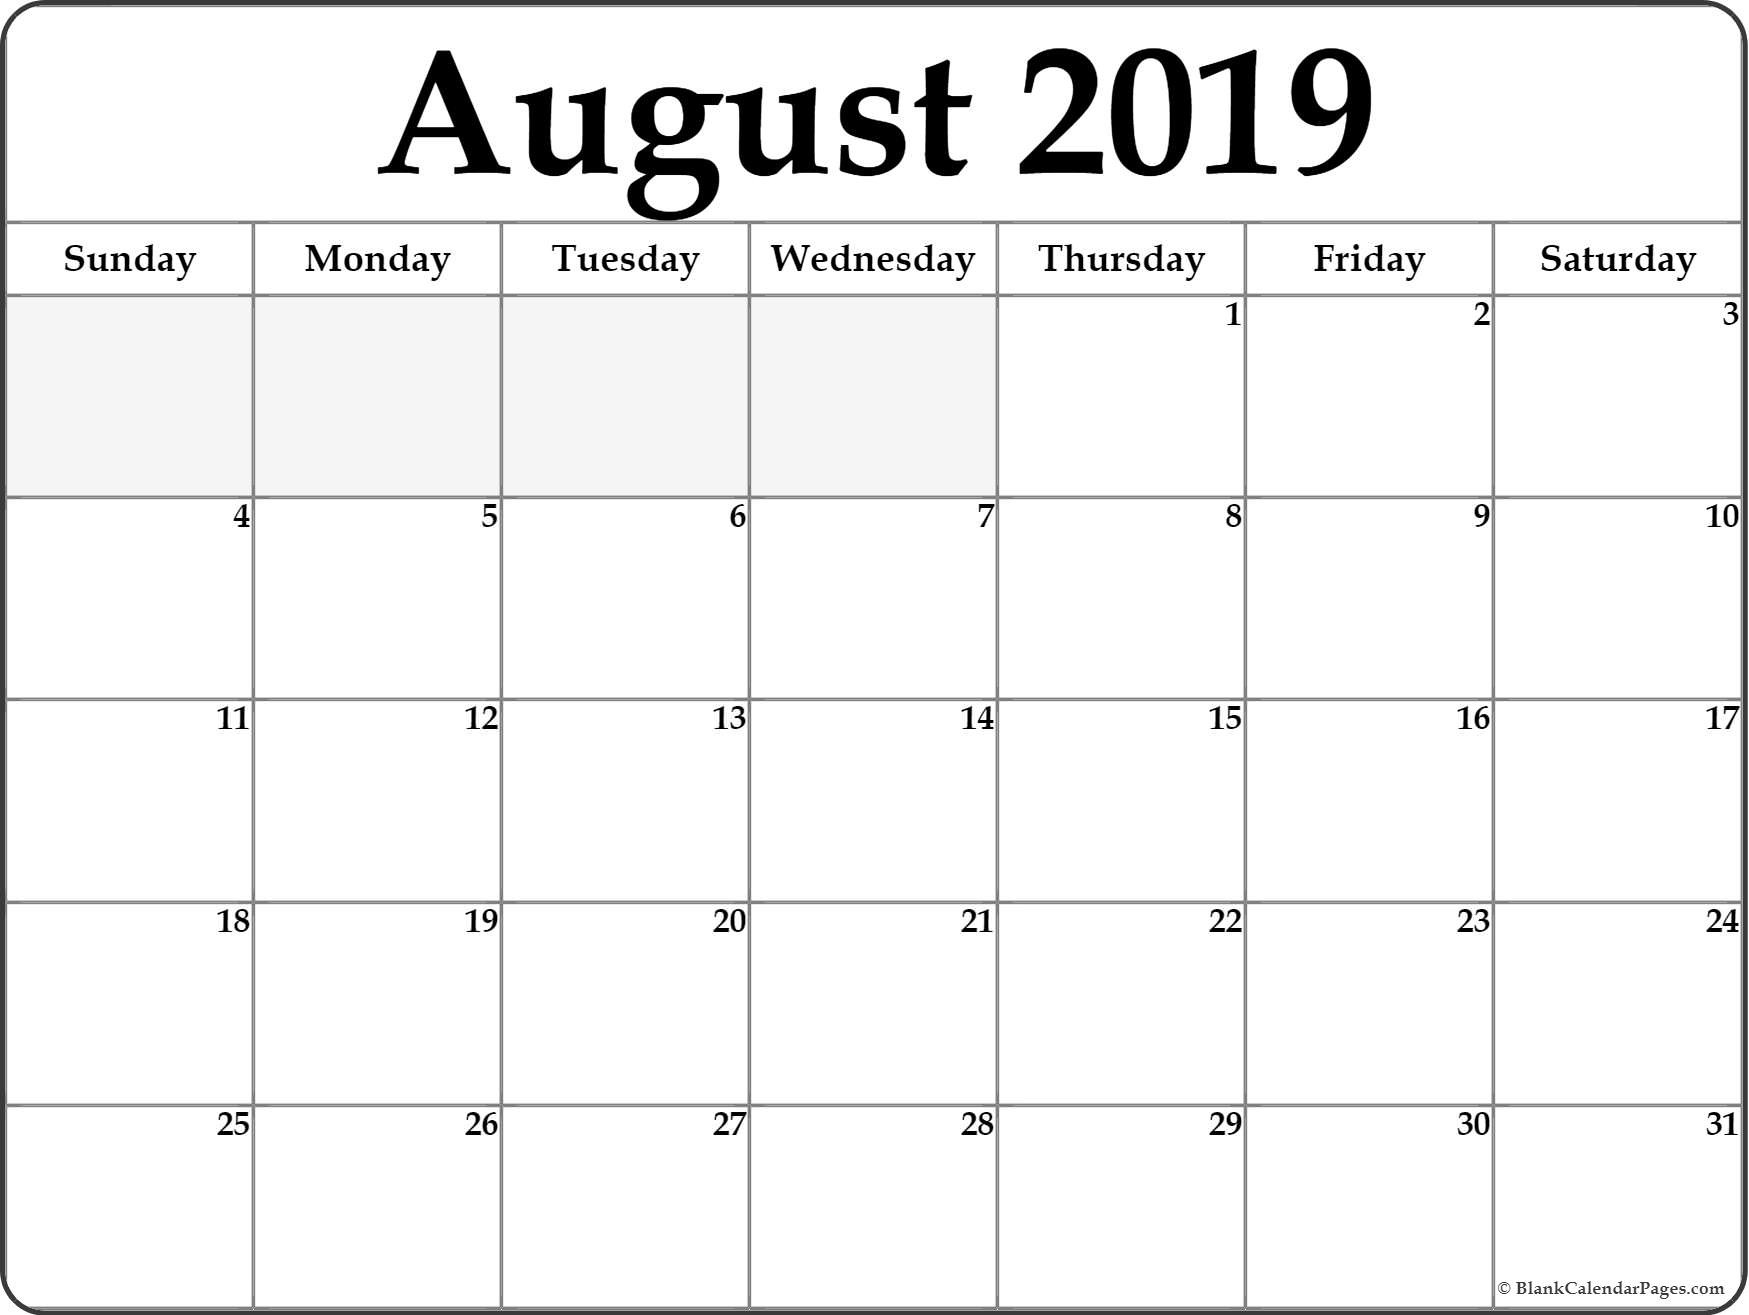 August 2019 Calendar | Free Printable Monthly Calendars-Printable Blank Calendars June July August